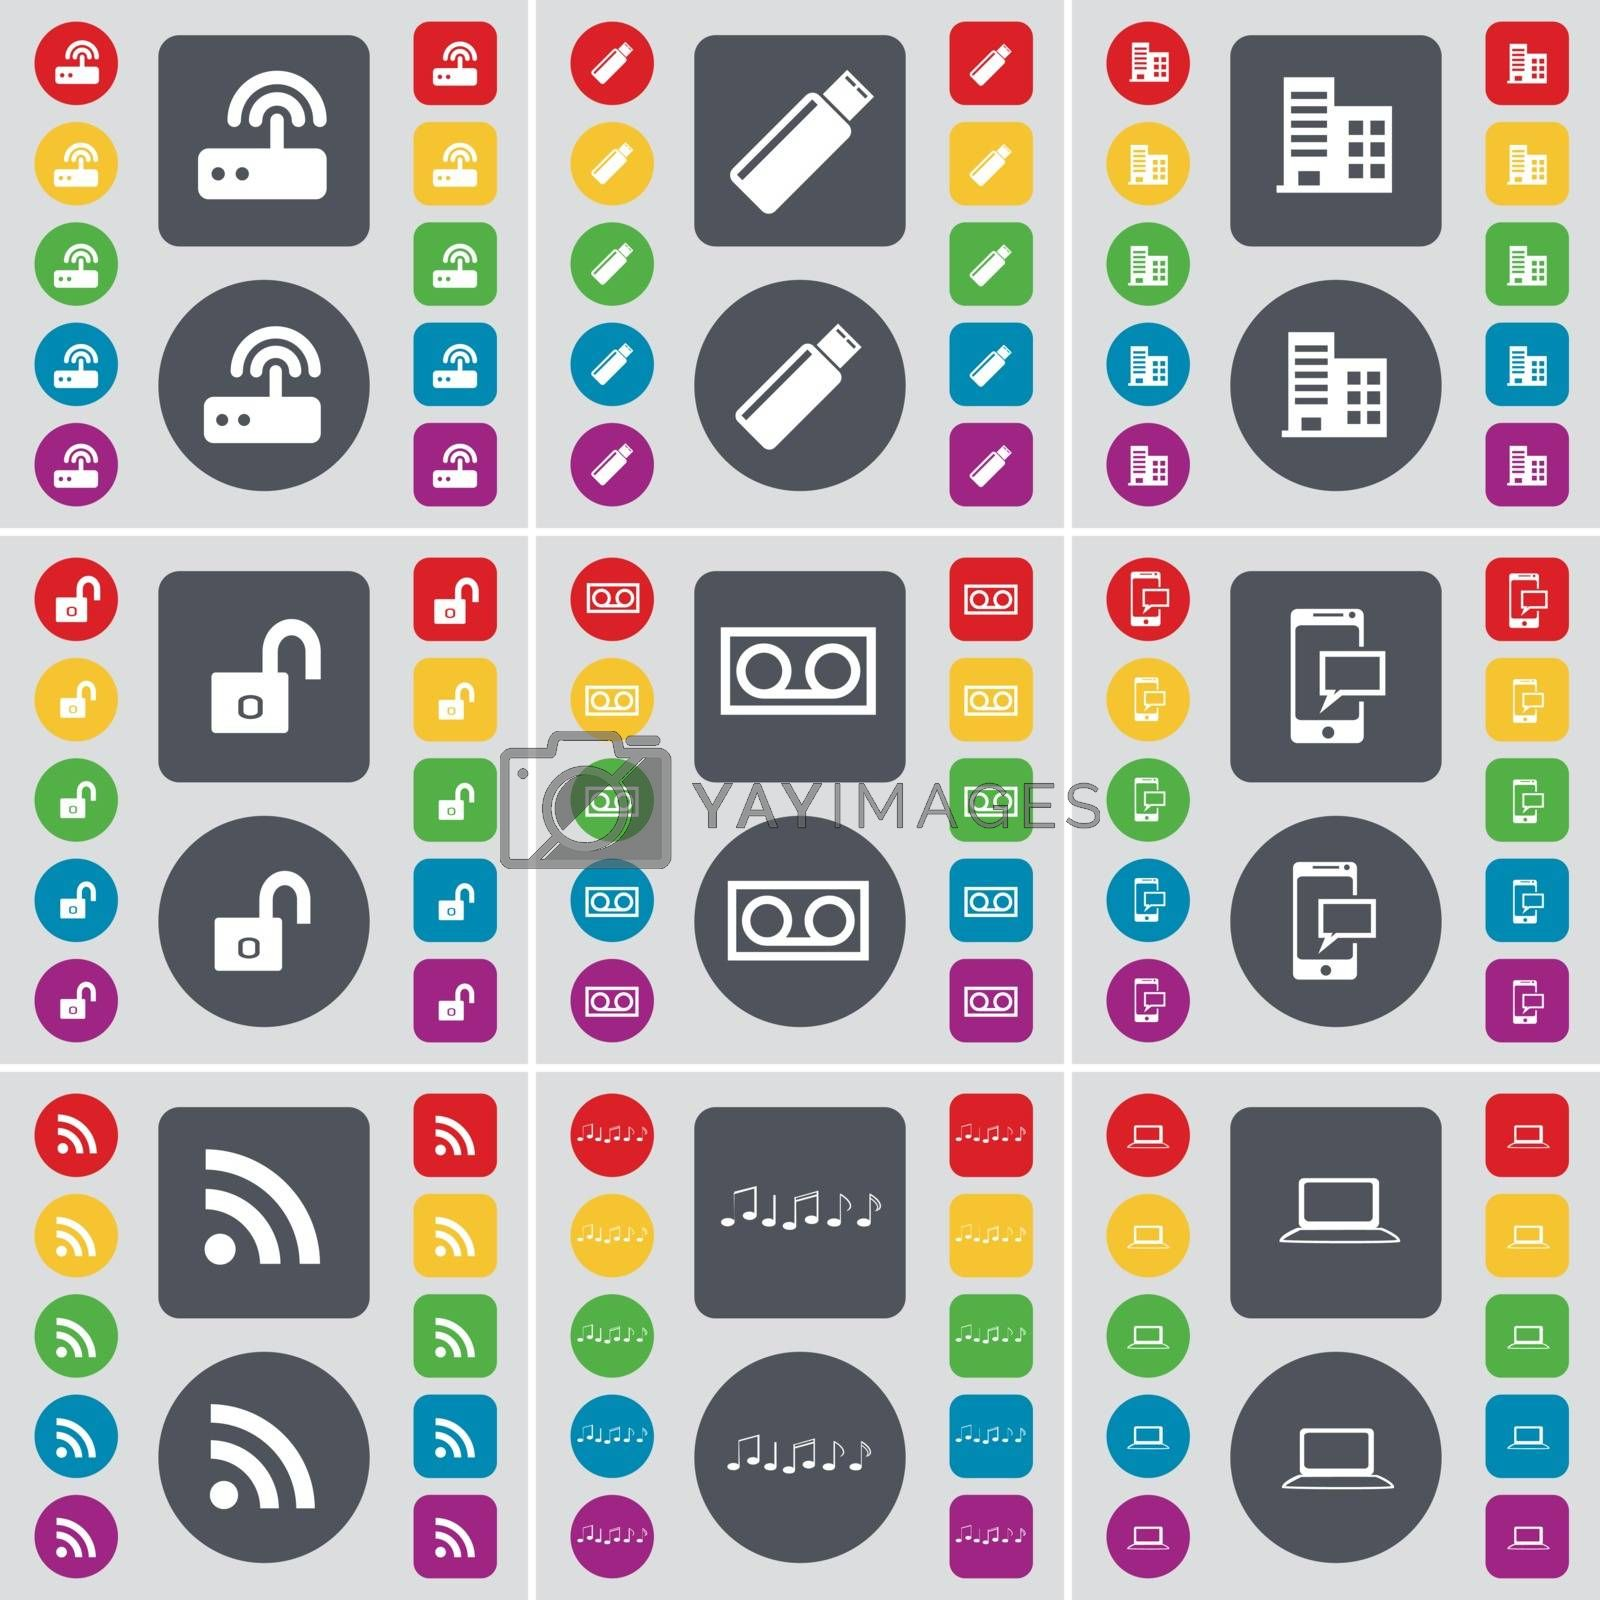 Royalty free image of Router, USB, Building, Lock, Cassette, SMS, RSS, Note, Laptop icon symbol. A large set of flat, colored buttons for your design. Vector by serhii_lohvyniuk